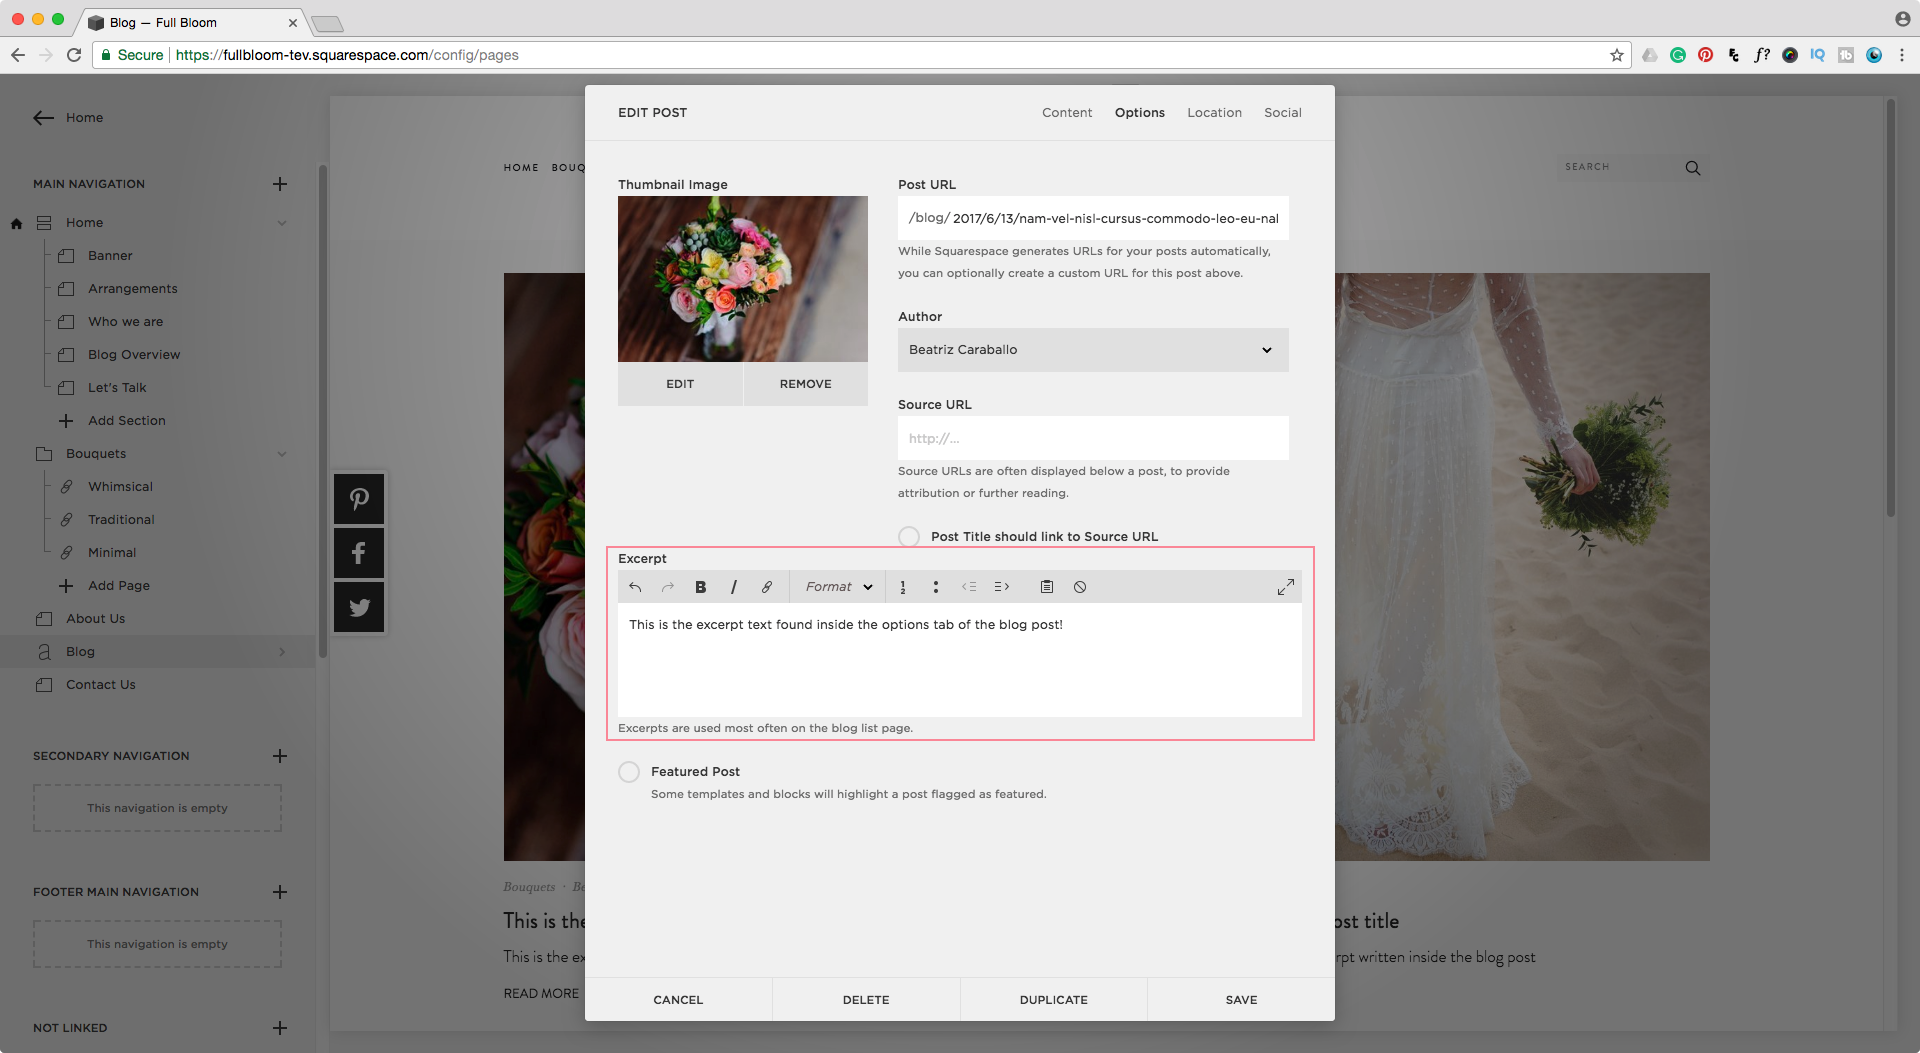 Edit a blog post excerpt text in Squarespace